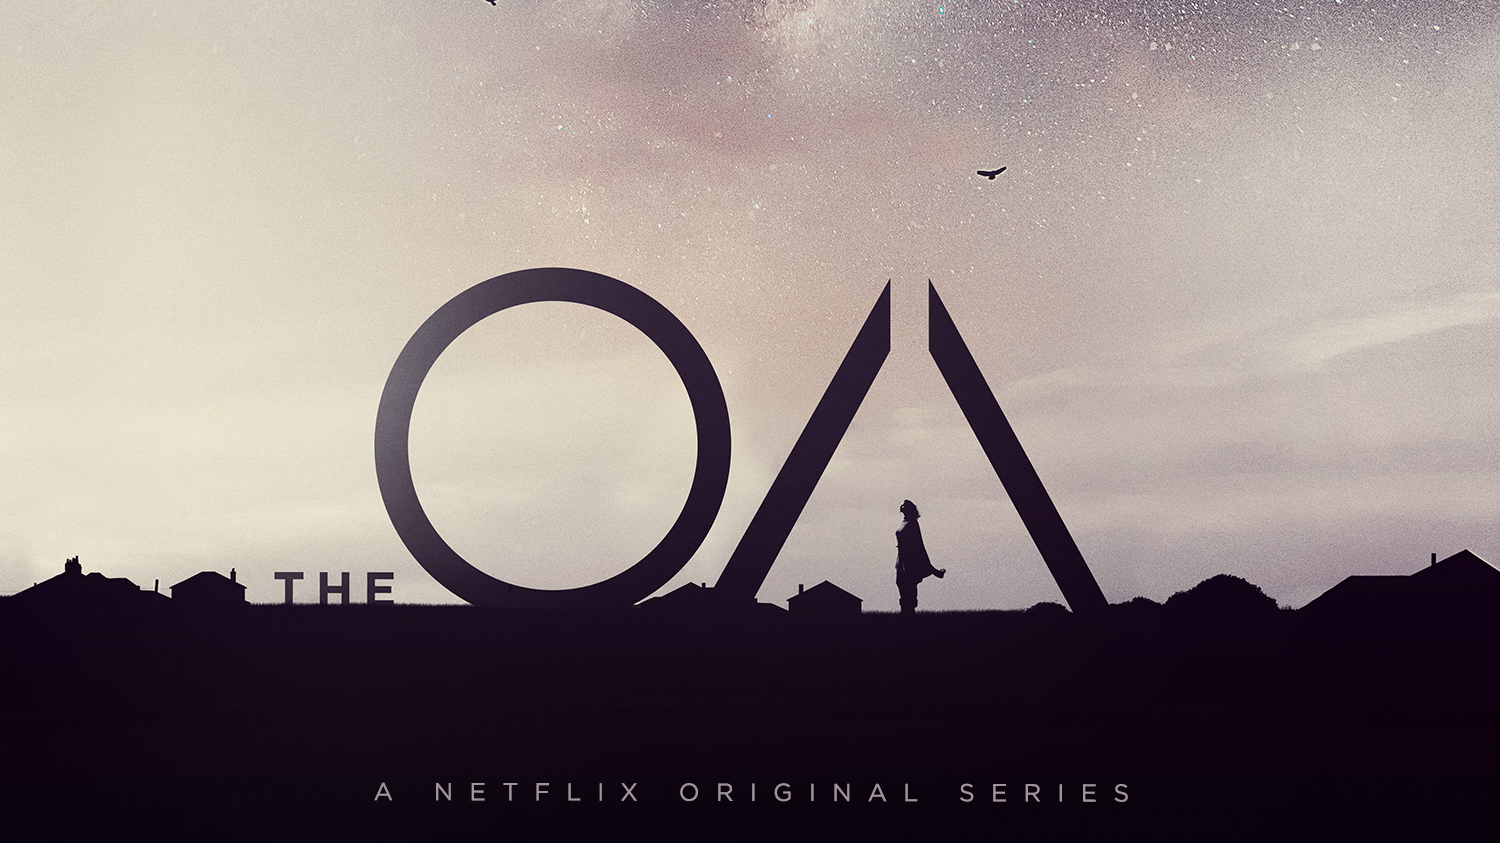 Promotional Poster for the Netflix series The OA